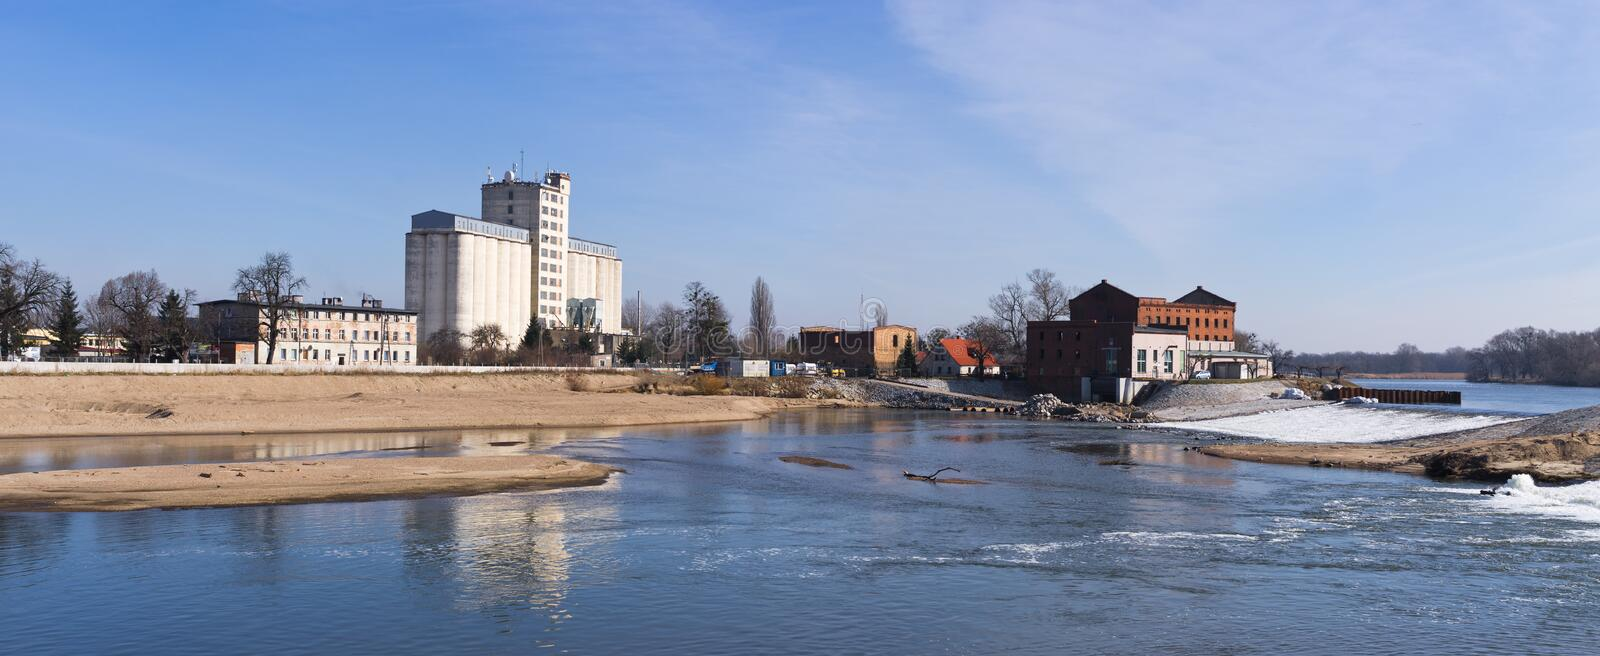 Waterfall on Odra river in Brzeg, Poland. Big waterfall on Odra river in Brzeg, Poland royalty free stock images